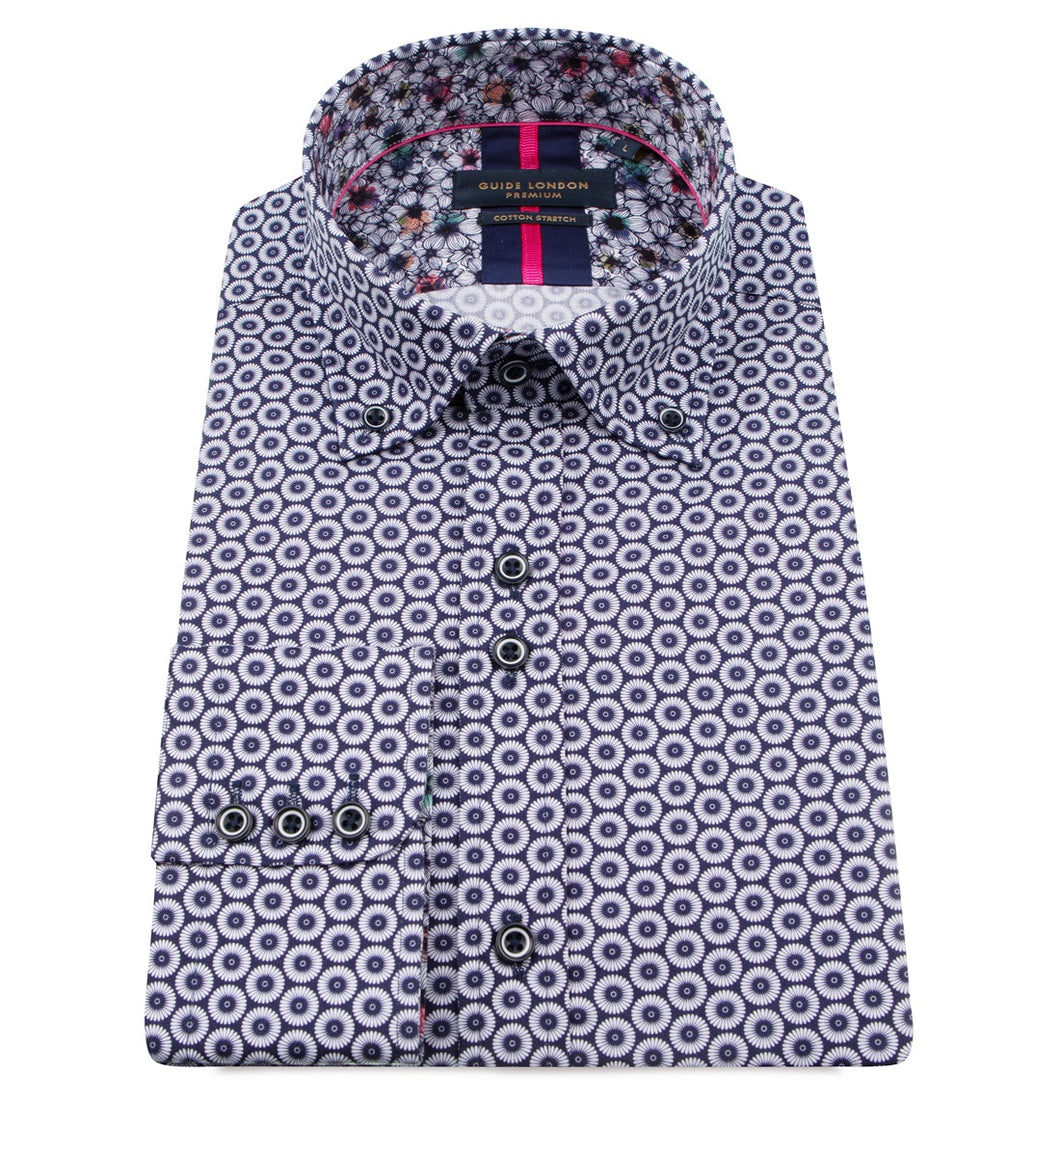 Guide London Circle Print Shirt Navy